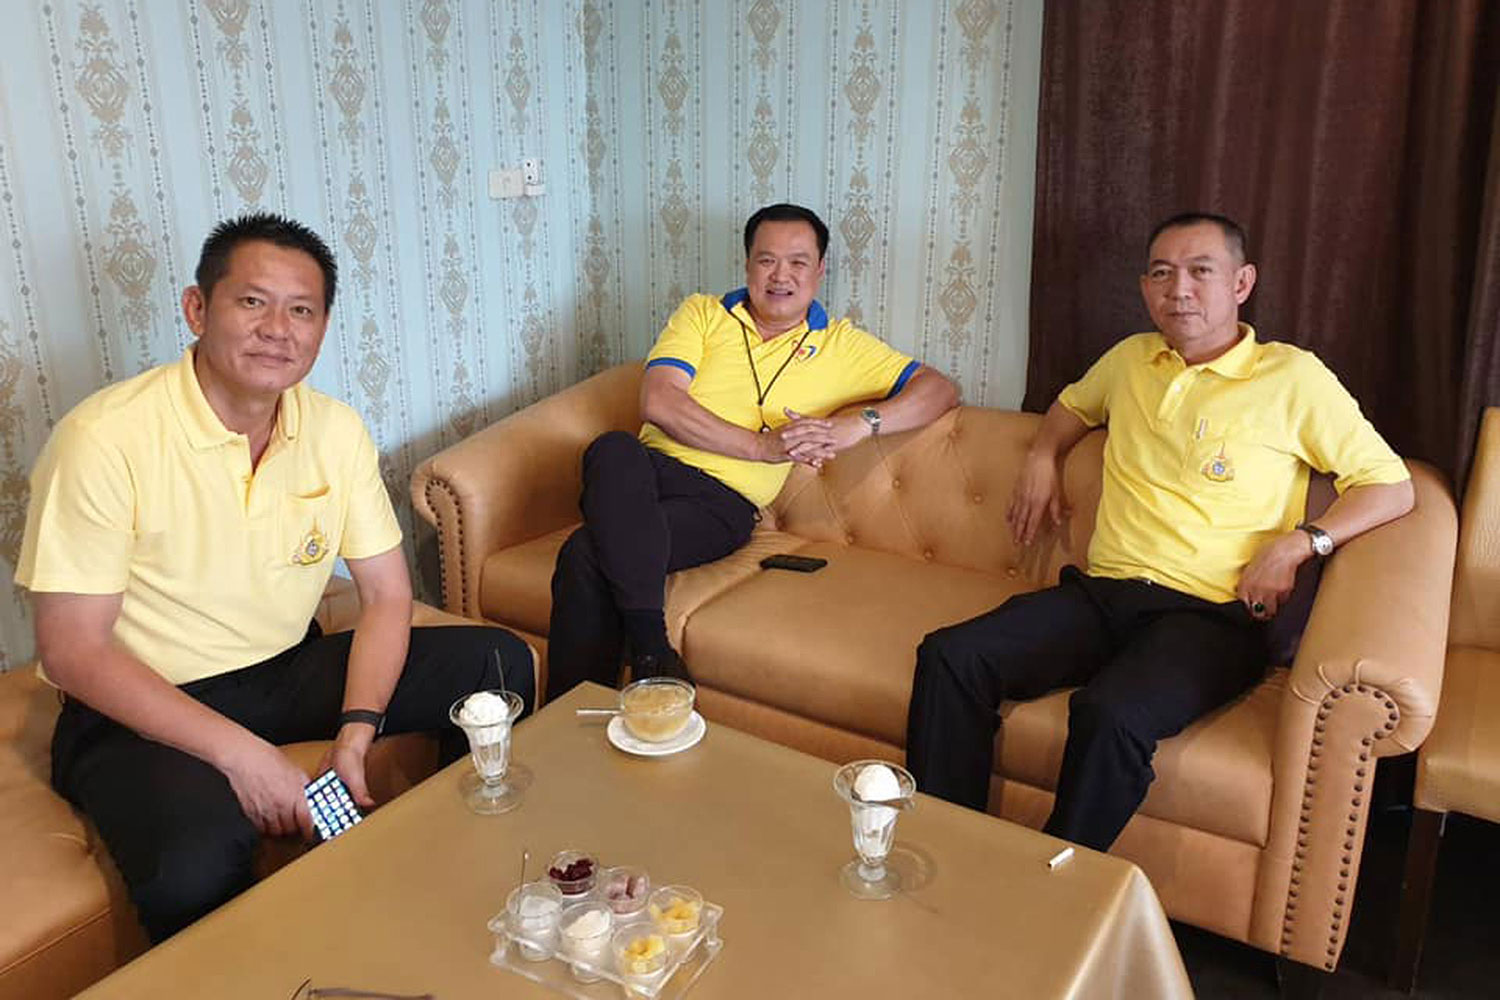 Bhumjaithai Party leader Anutin Charnvirakul is flanked by Democrat MP for Prachuap Khiri Khan Montree Panoinon (left) and Democorat secretary-general Chalermchai Sri-on during their working lunch last Tuesday. (Photo from Anutin Charnvirakul Facebook account)